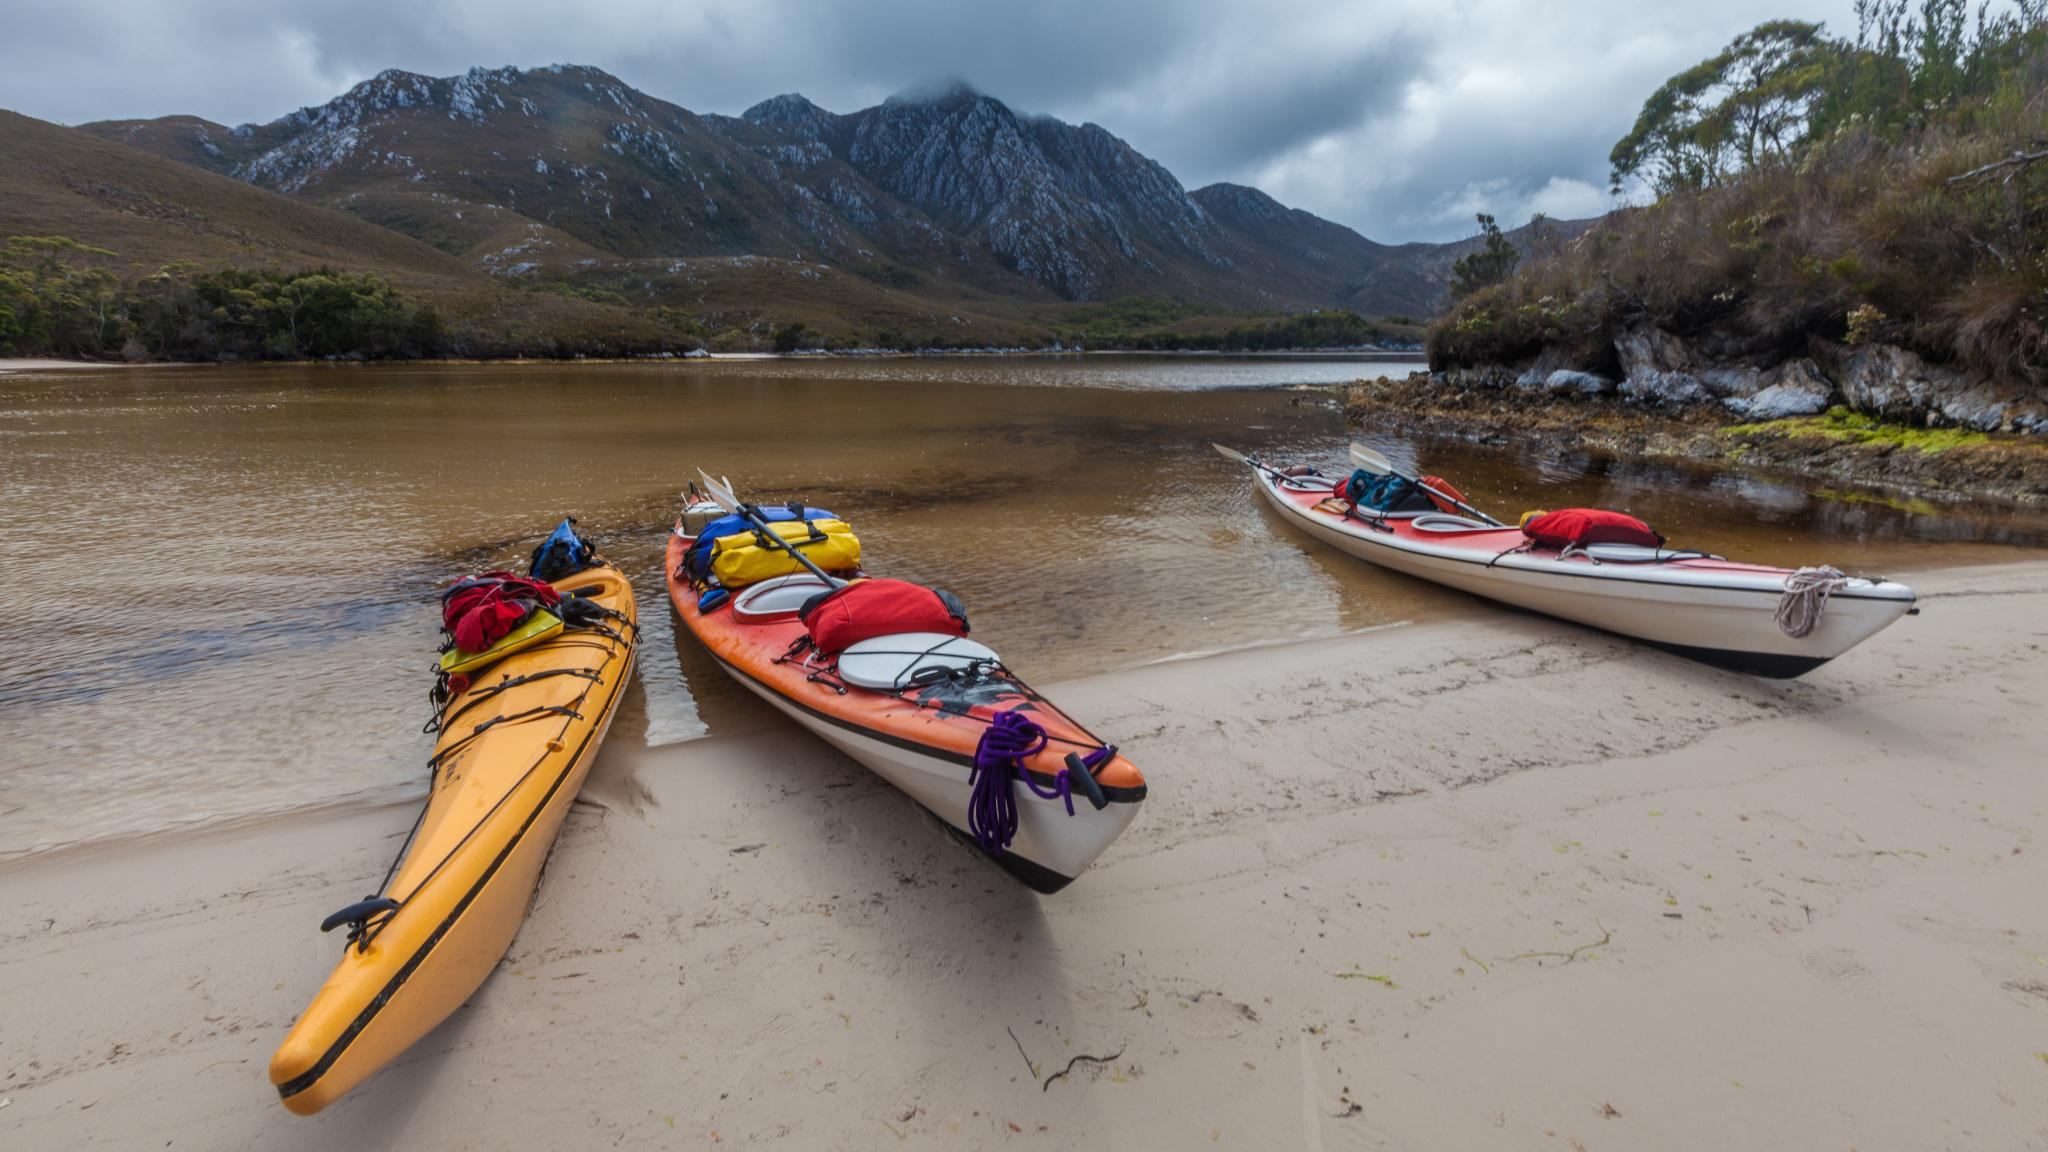 Kayakers on beach in Bramble Cove, Port Davey, Southwest Tasmania